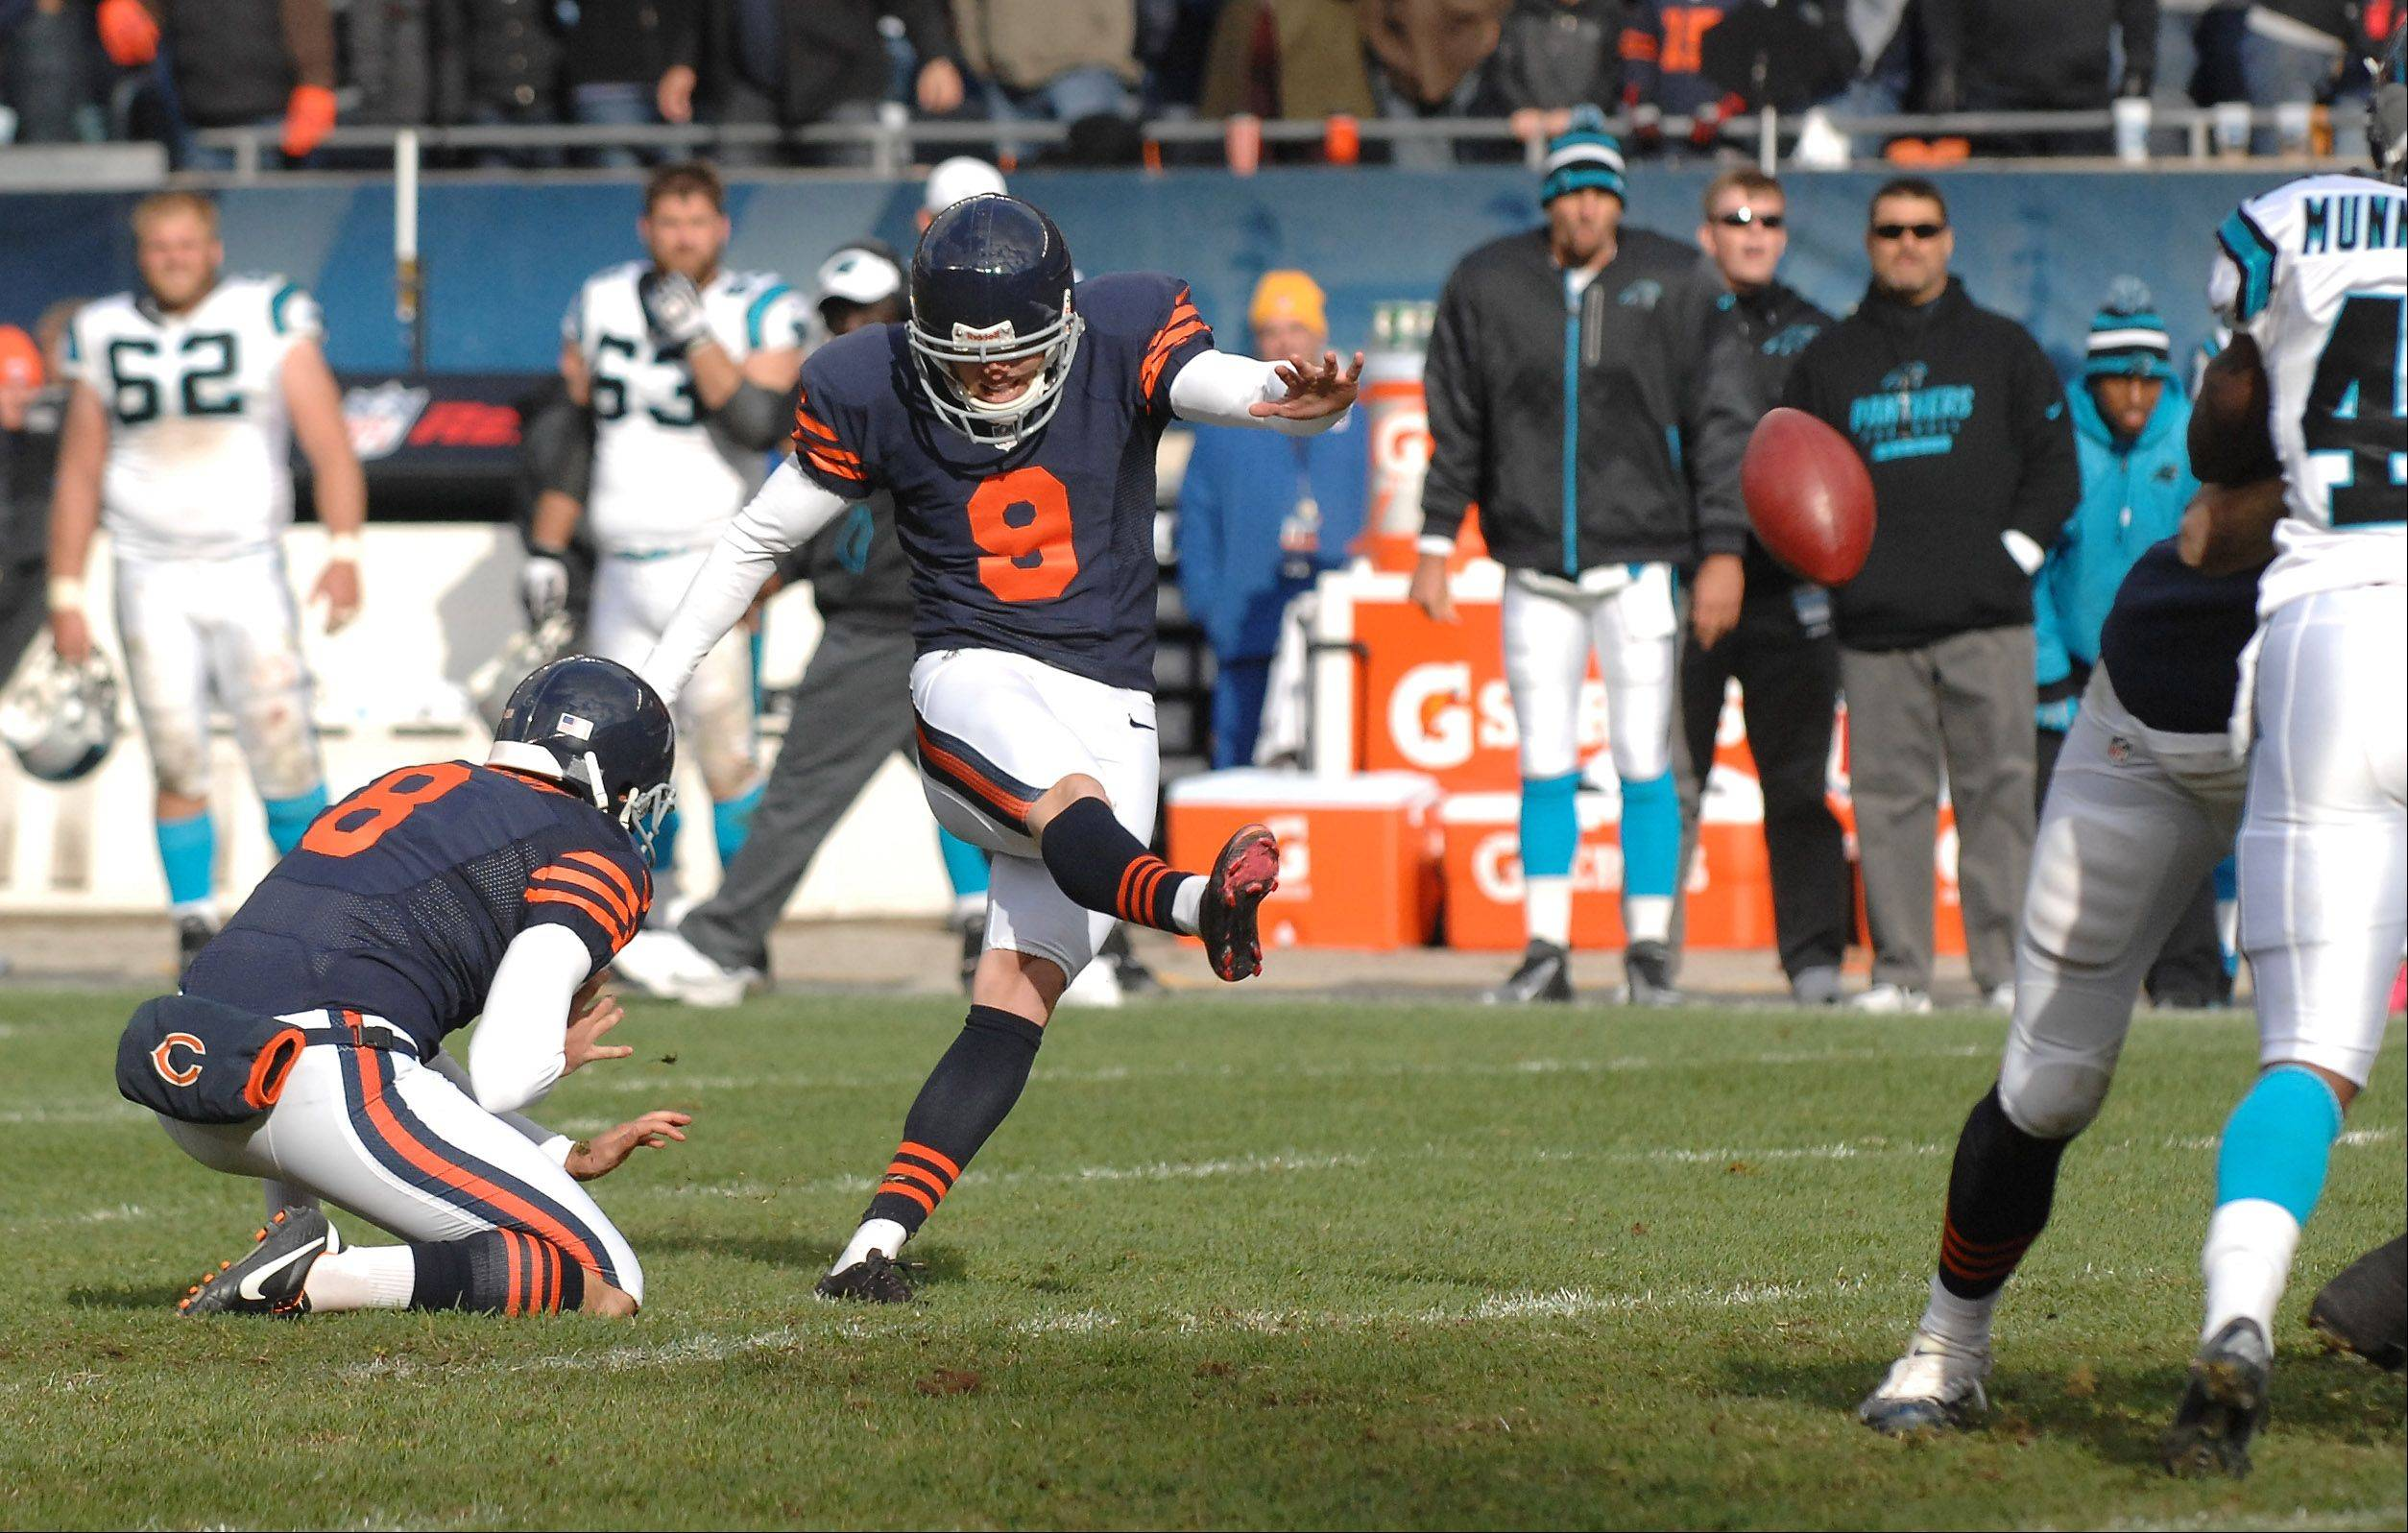 Chicago Bears kicker Robbie Gould (9) kicks the game-winning field goal as time expires during Sunday's game against Carolina at Soldier Field in Chicago.